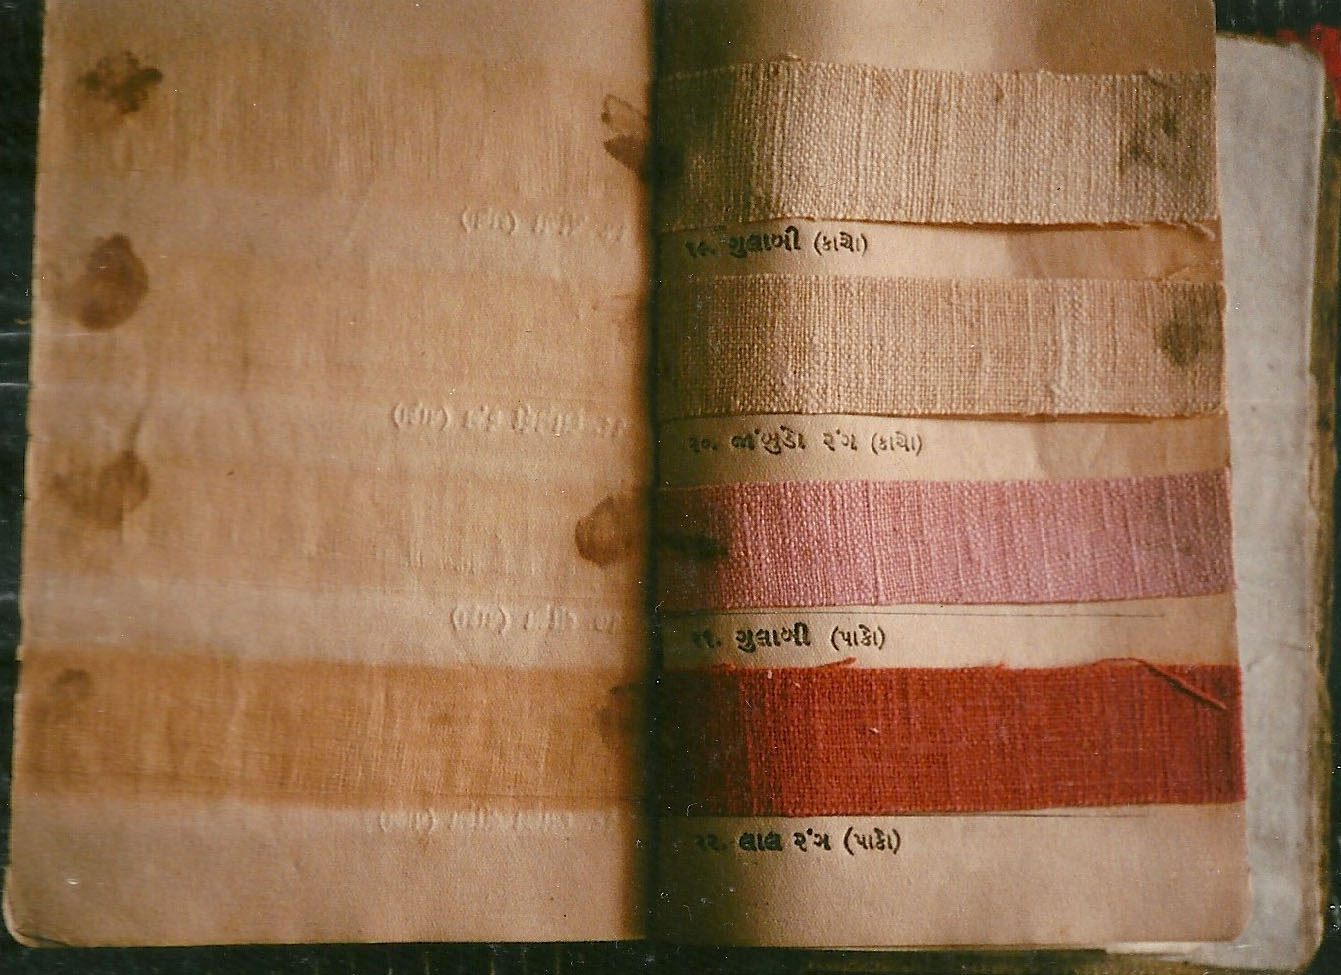 Pages from Gandhi's book on natural dyes and khadi. Credit: Carmen Artigas